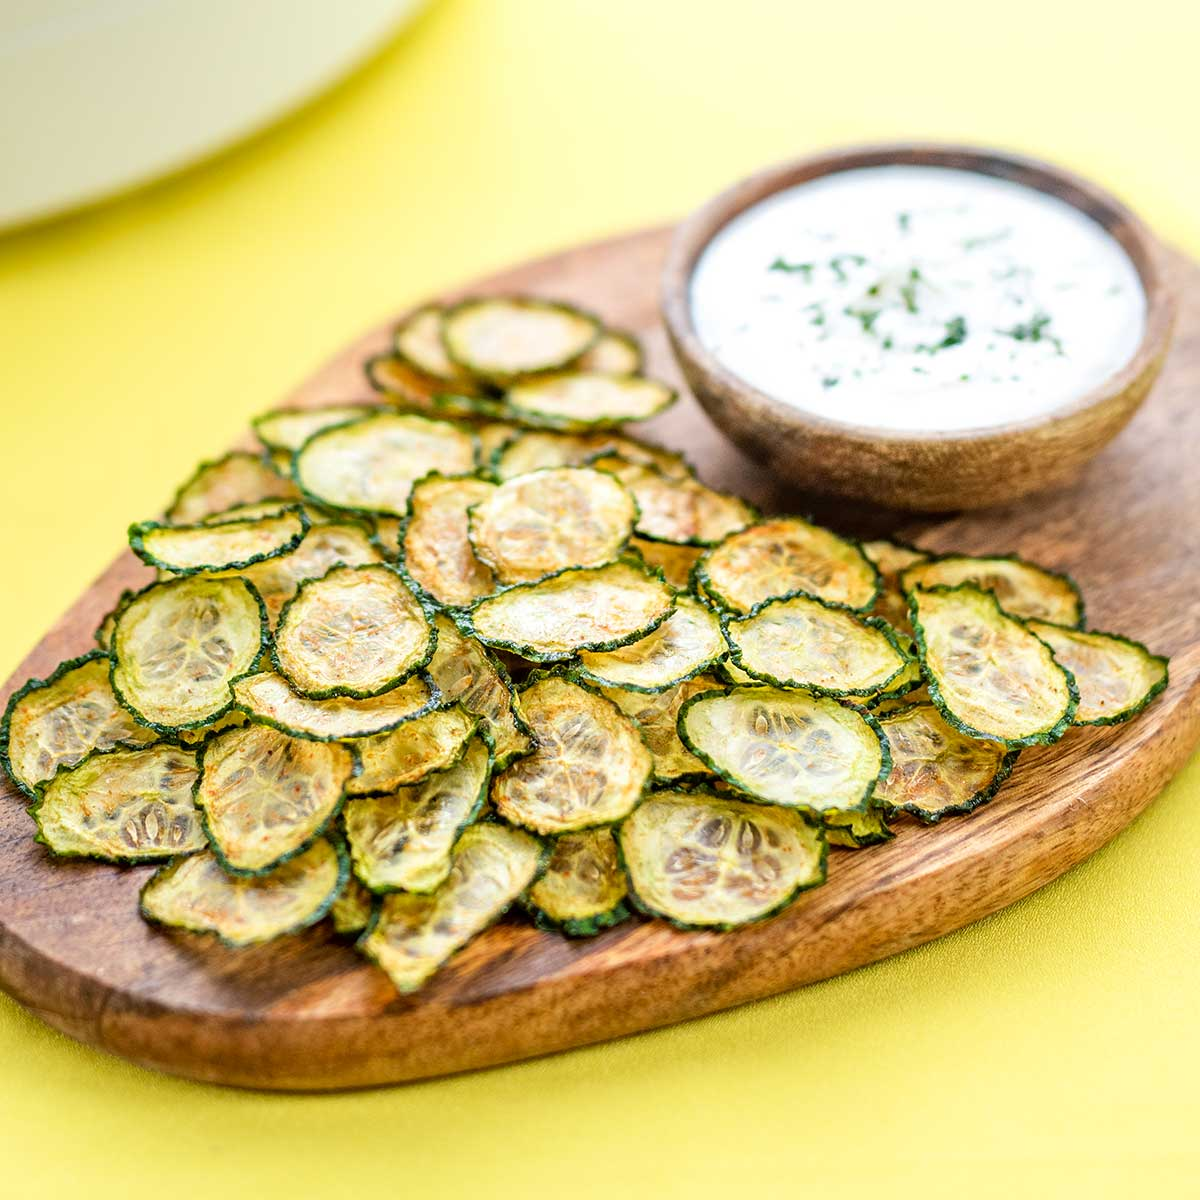 Keto Cucumber Chips on a wooden board with a bowl of creamy dip on a yellow background